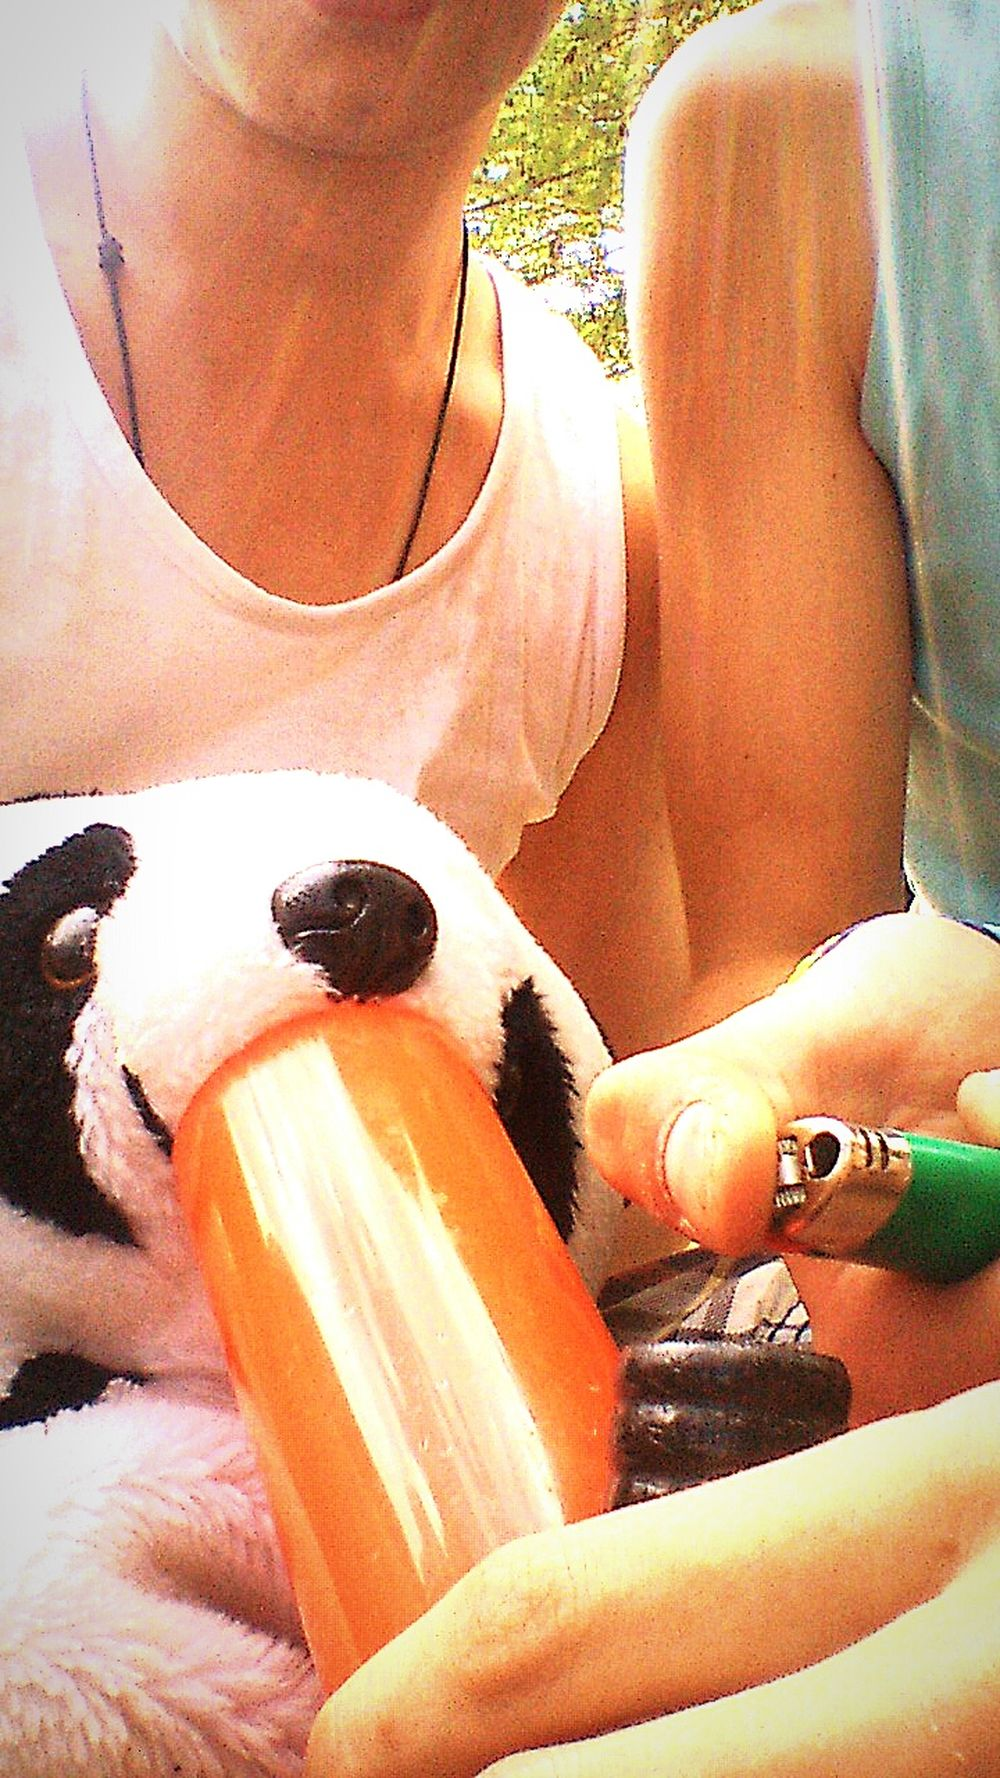 Young Wild And Free(; Démon D'or Poleymieux Panda Smoke Weed Bang Toke Chilling Festival Music